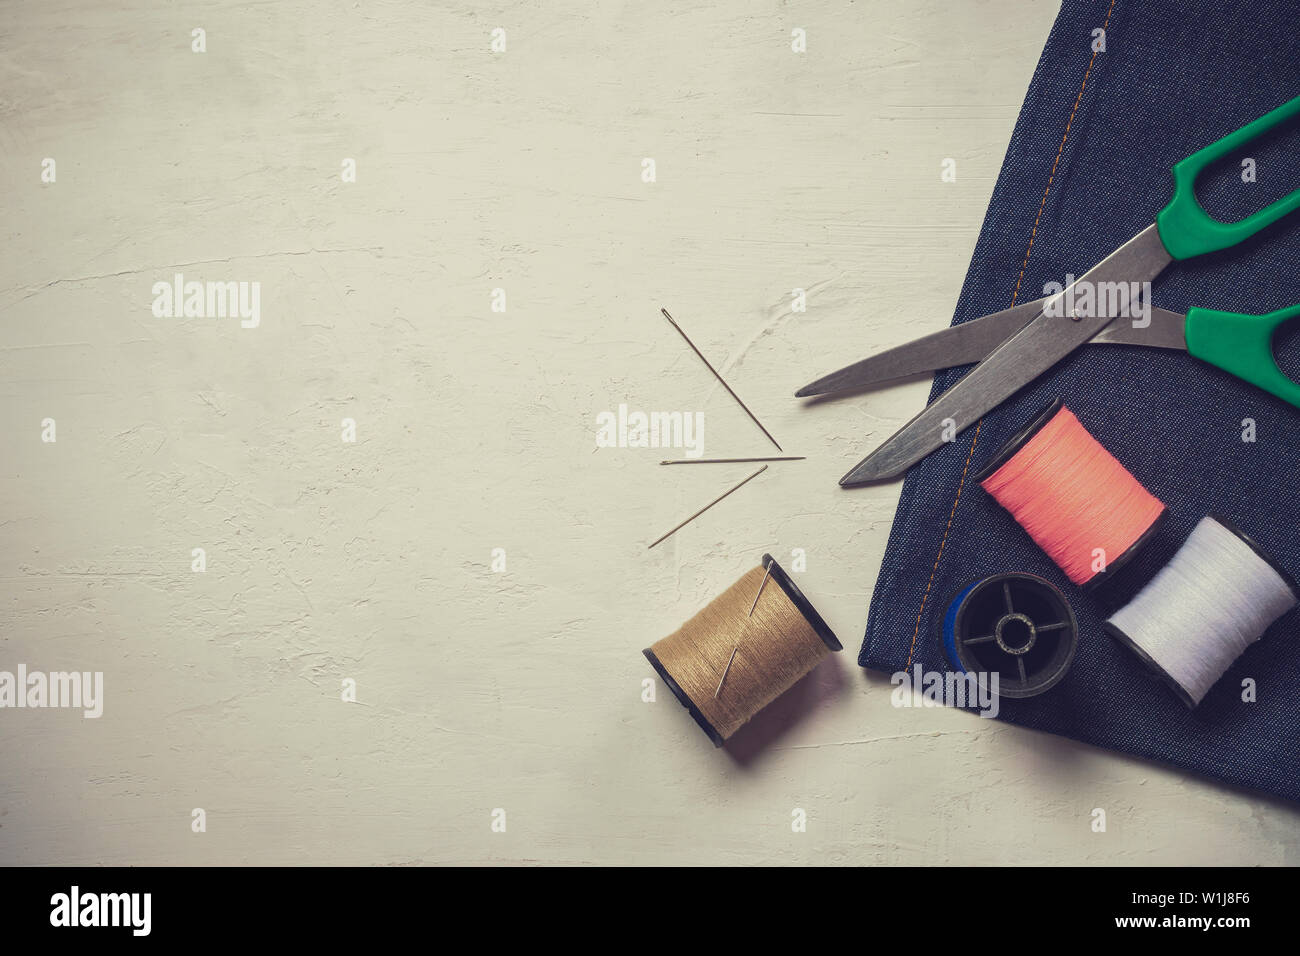 Sewing tools and equipment on white wooden floor. Top view and copy space for text. Concept of tailor or fashion designer. Stock Photo